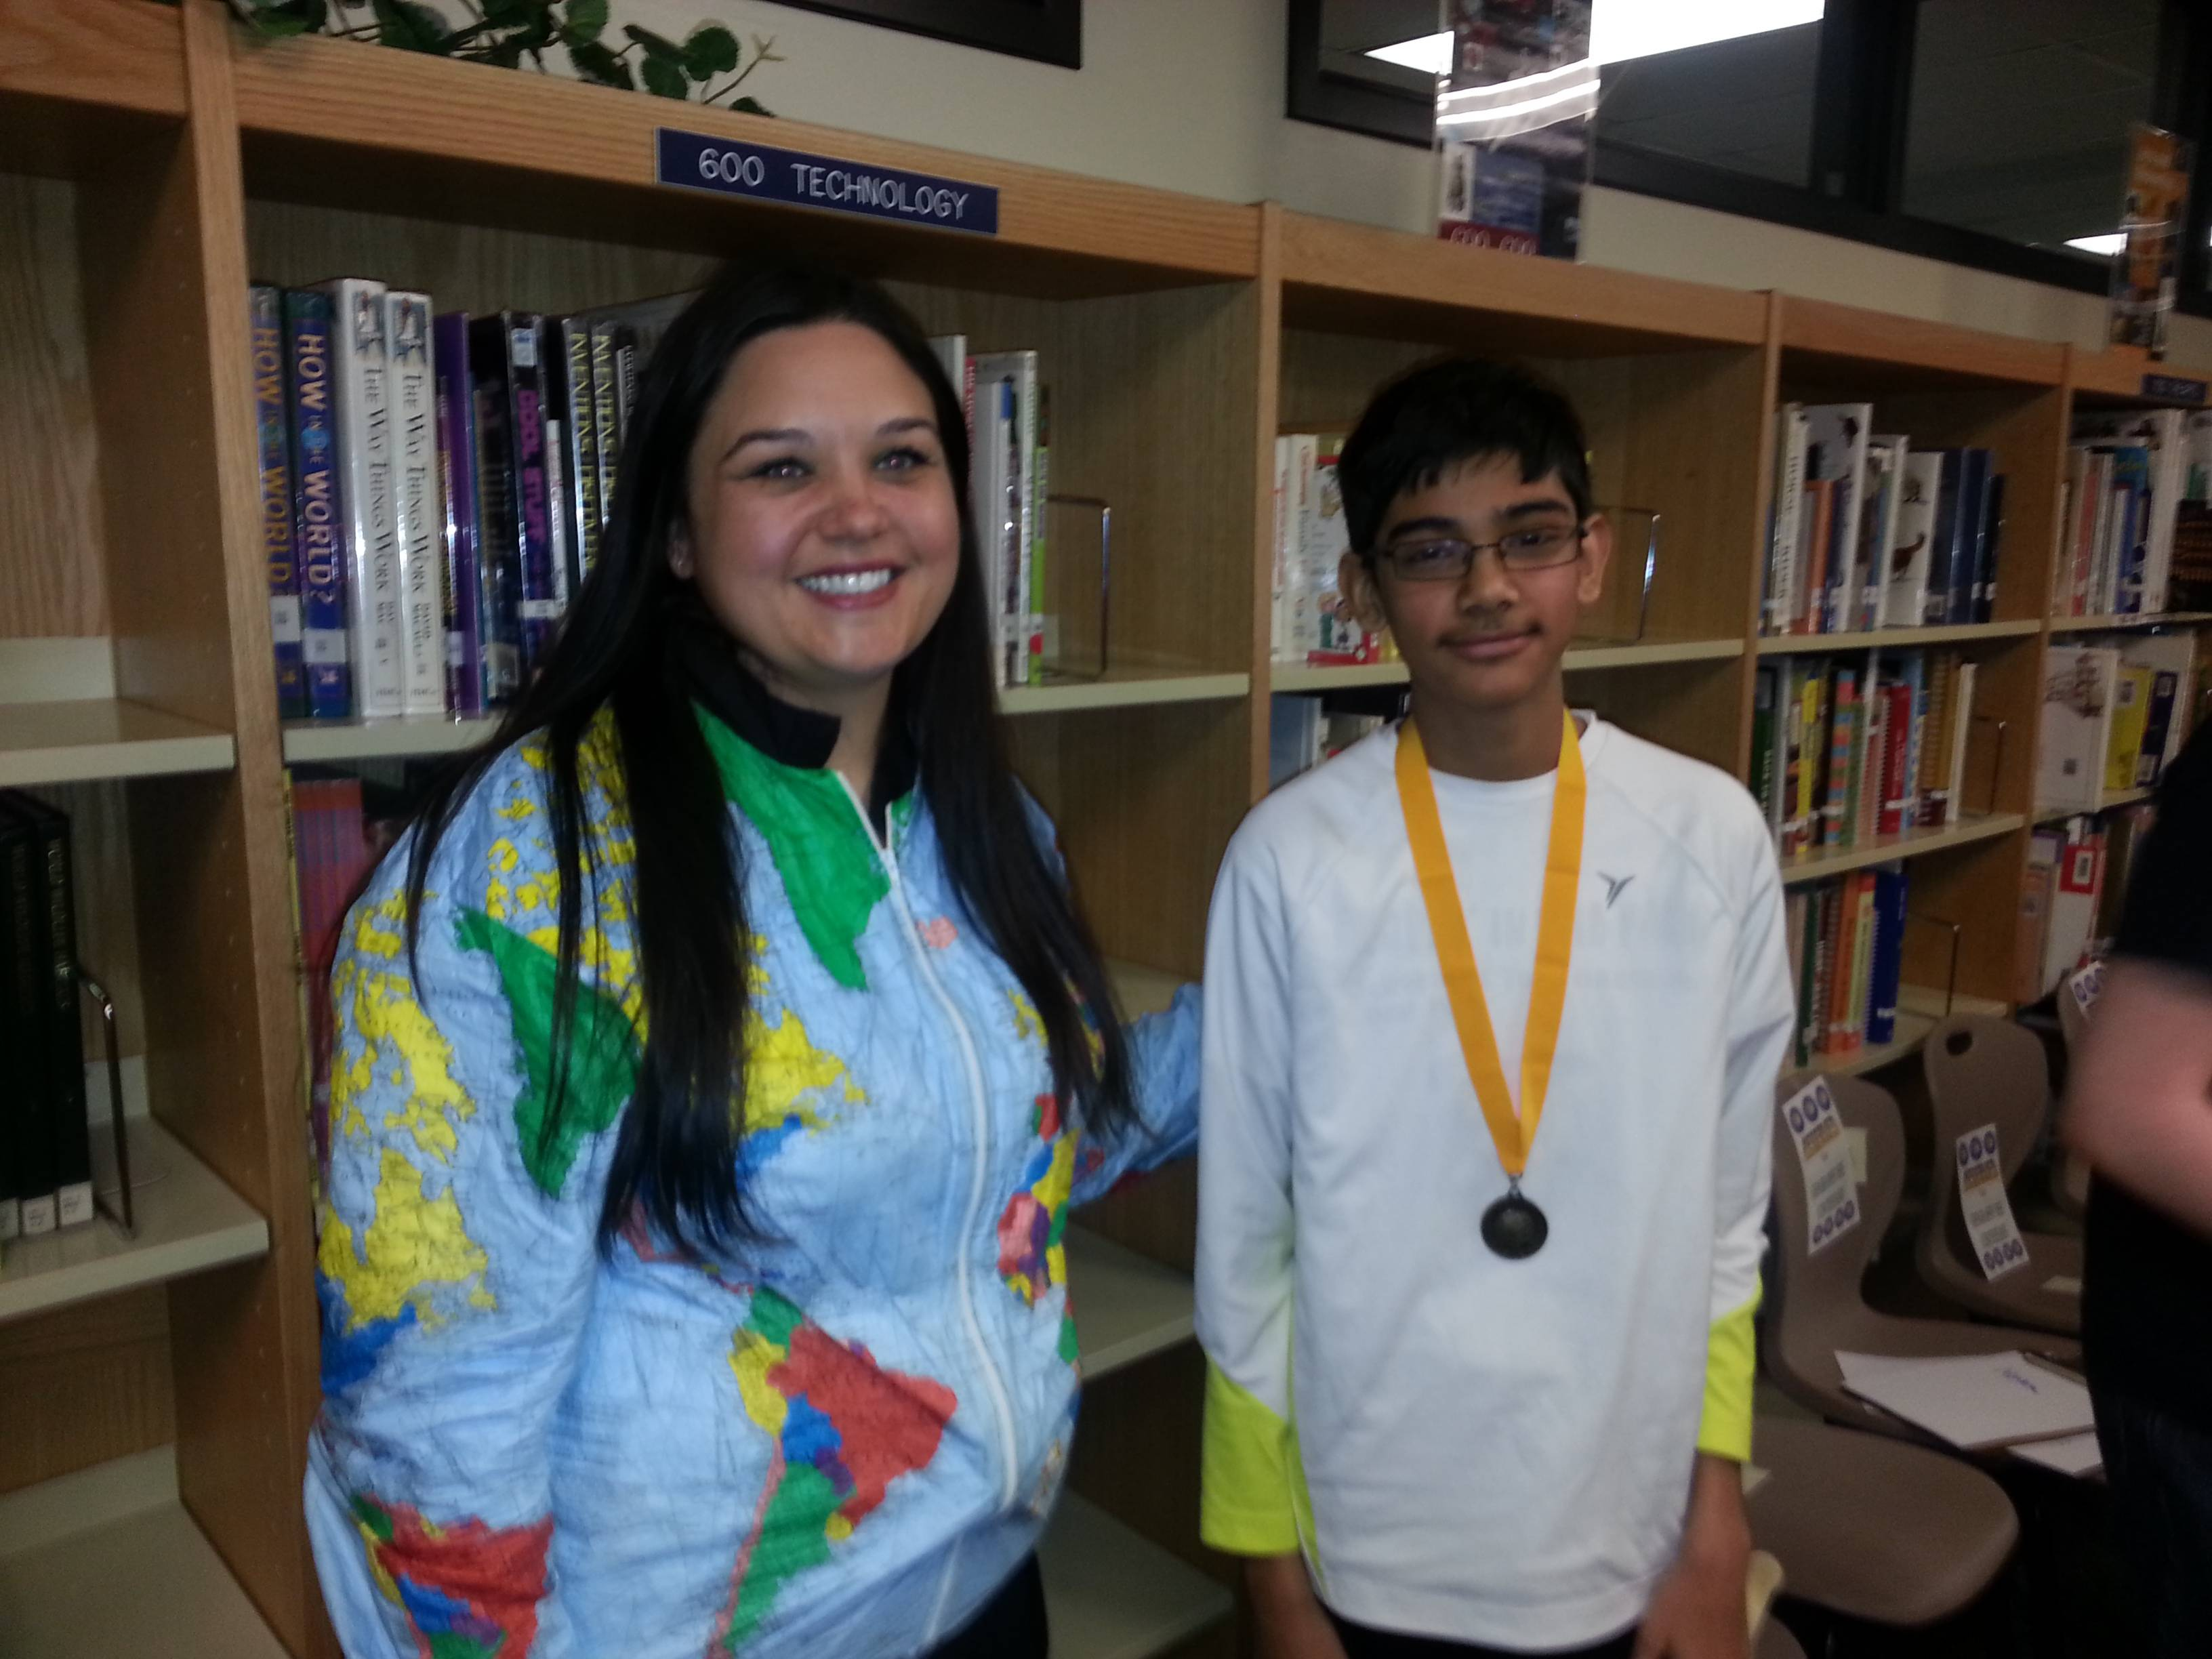 Shaan Thakkar winning medal at local Geography Bee